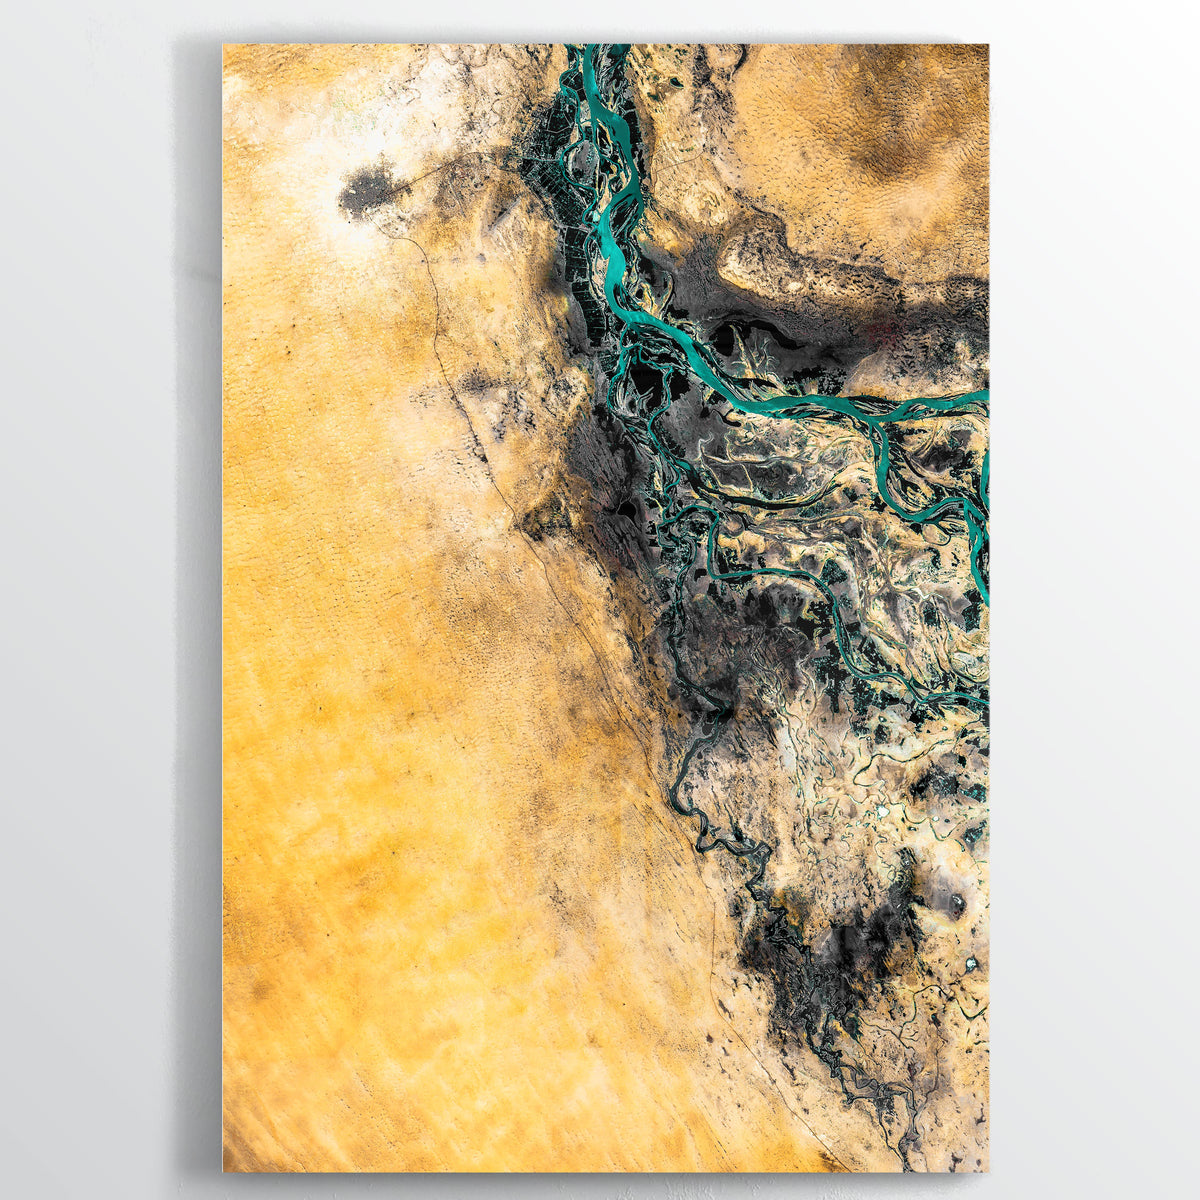 Timbuktu Earth Photography - Floating Acrylic Art